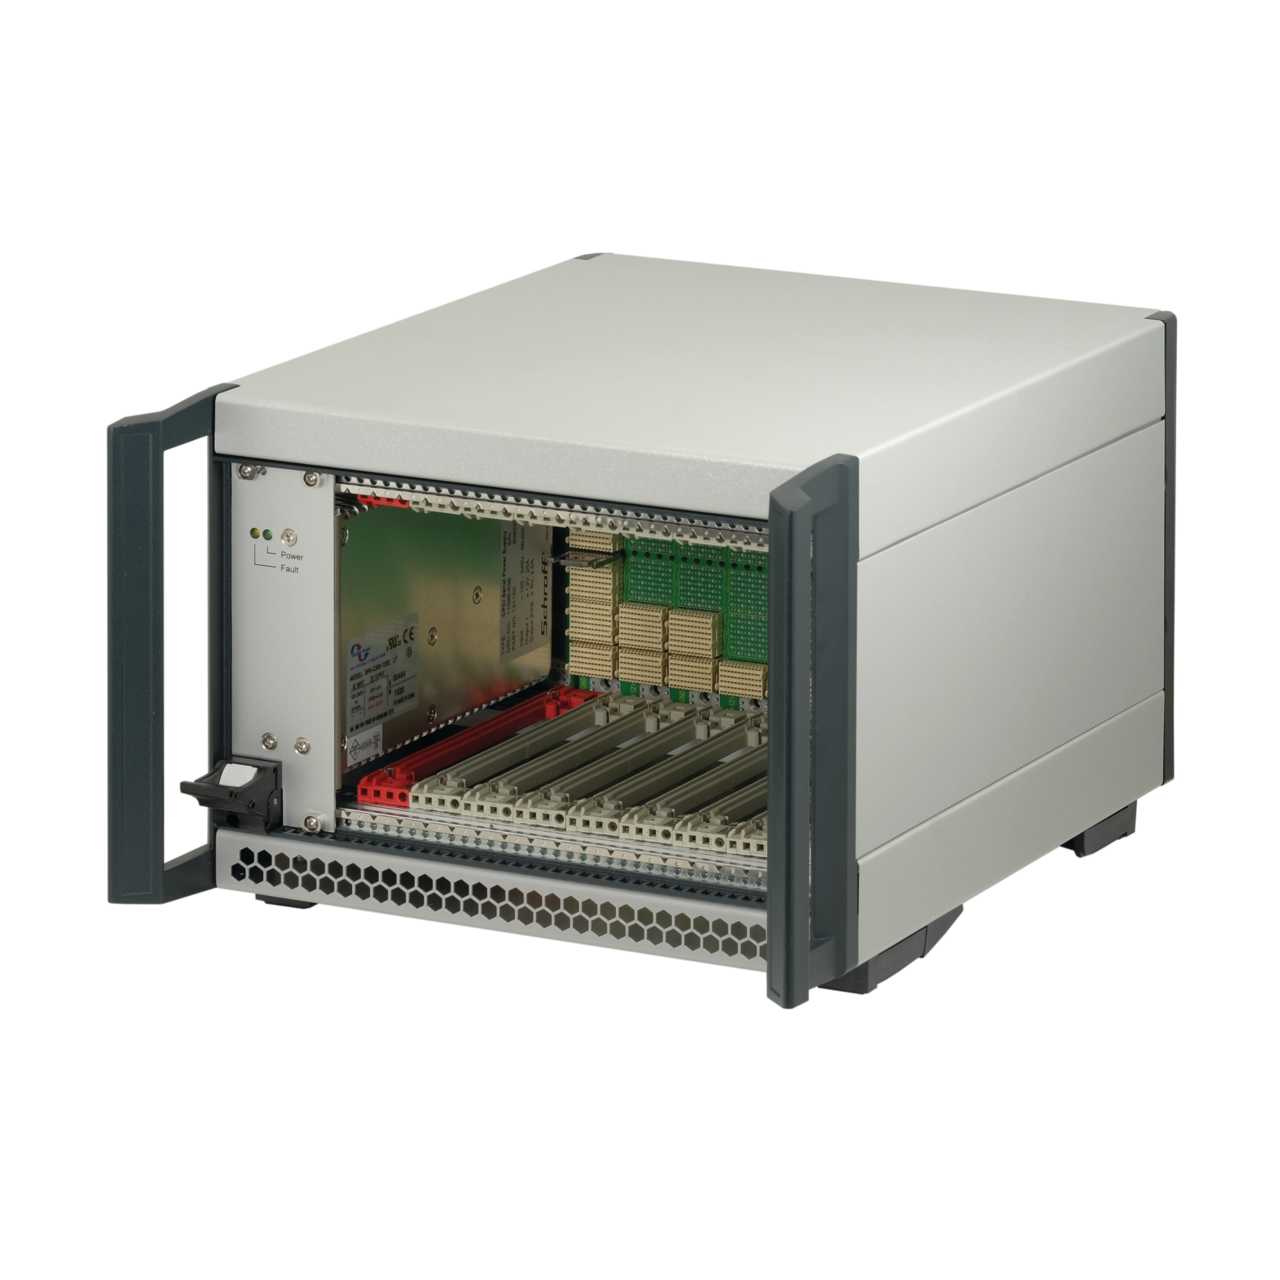 Image for CompactPCI Serial 4 U, 9 slot, 44 HP, without Rear I/O from nVent SCHROFF | Europe, Middle East, Africa and India